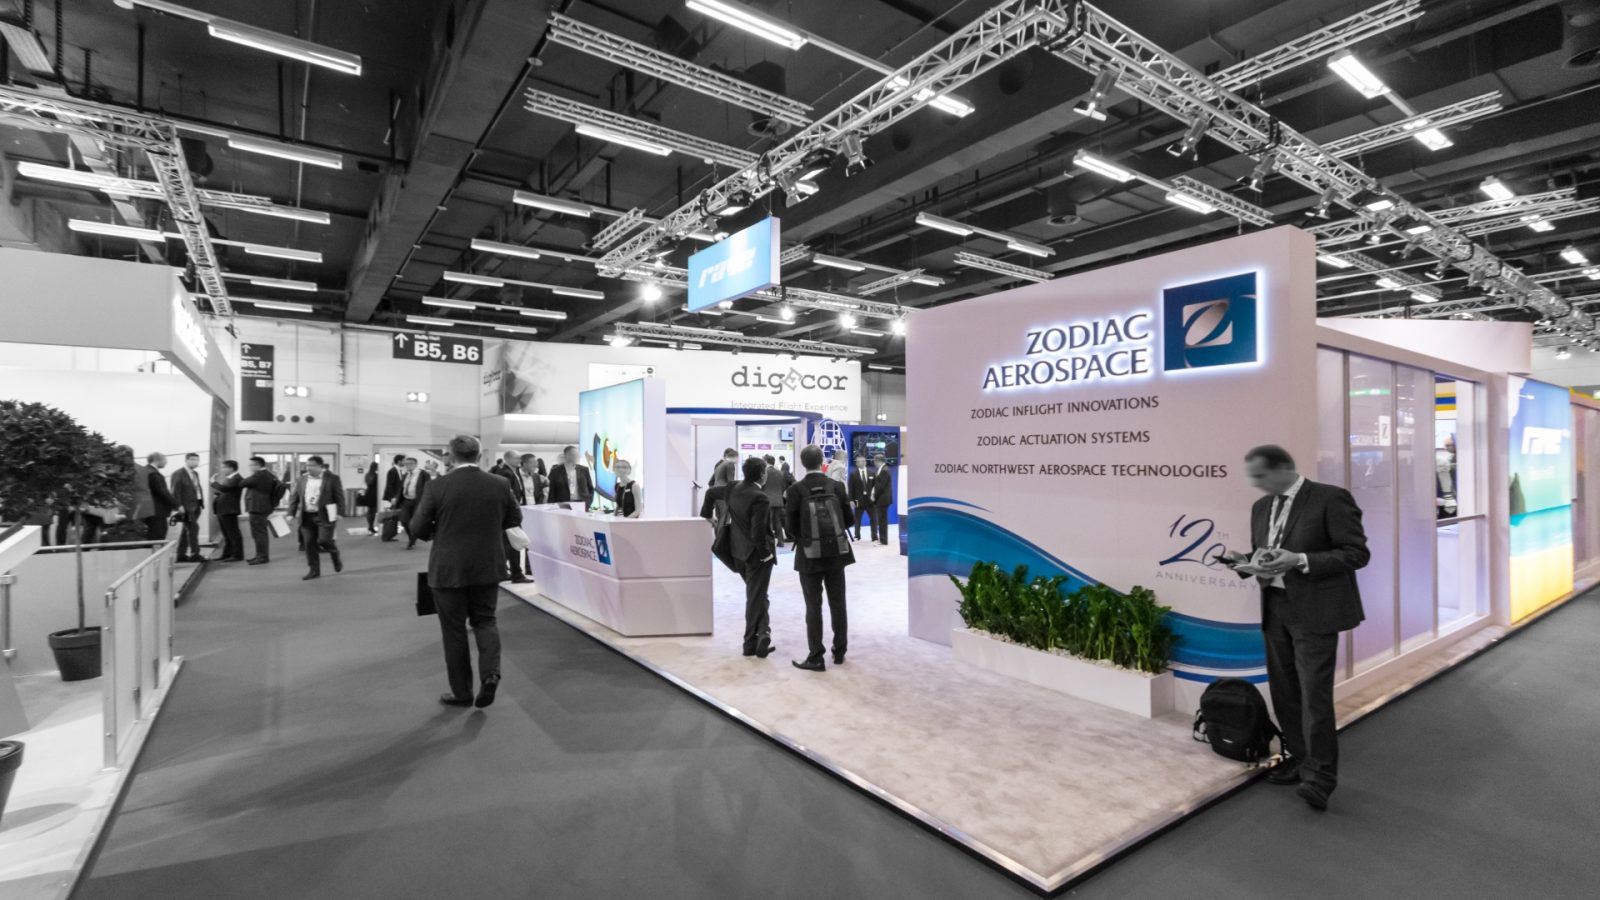 Zodiac<br>348 sqm<br>Aircraft Interiors Expo